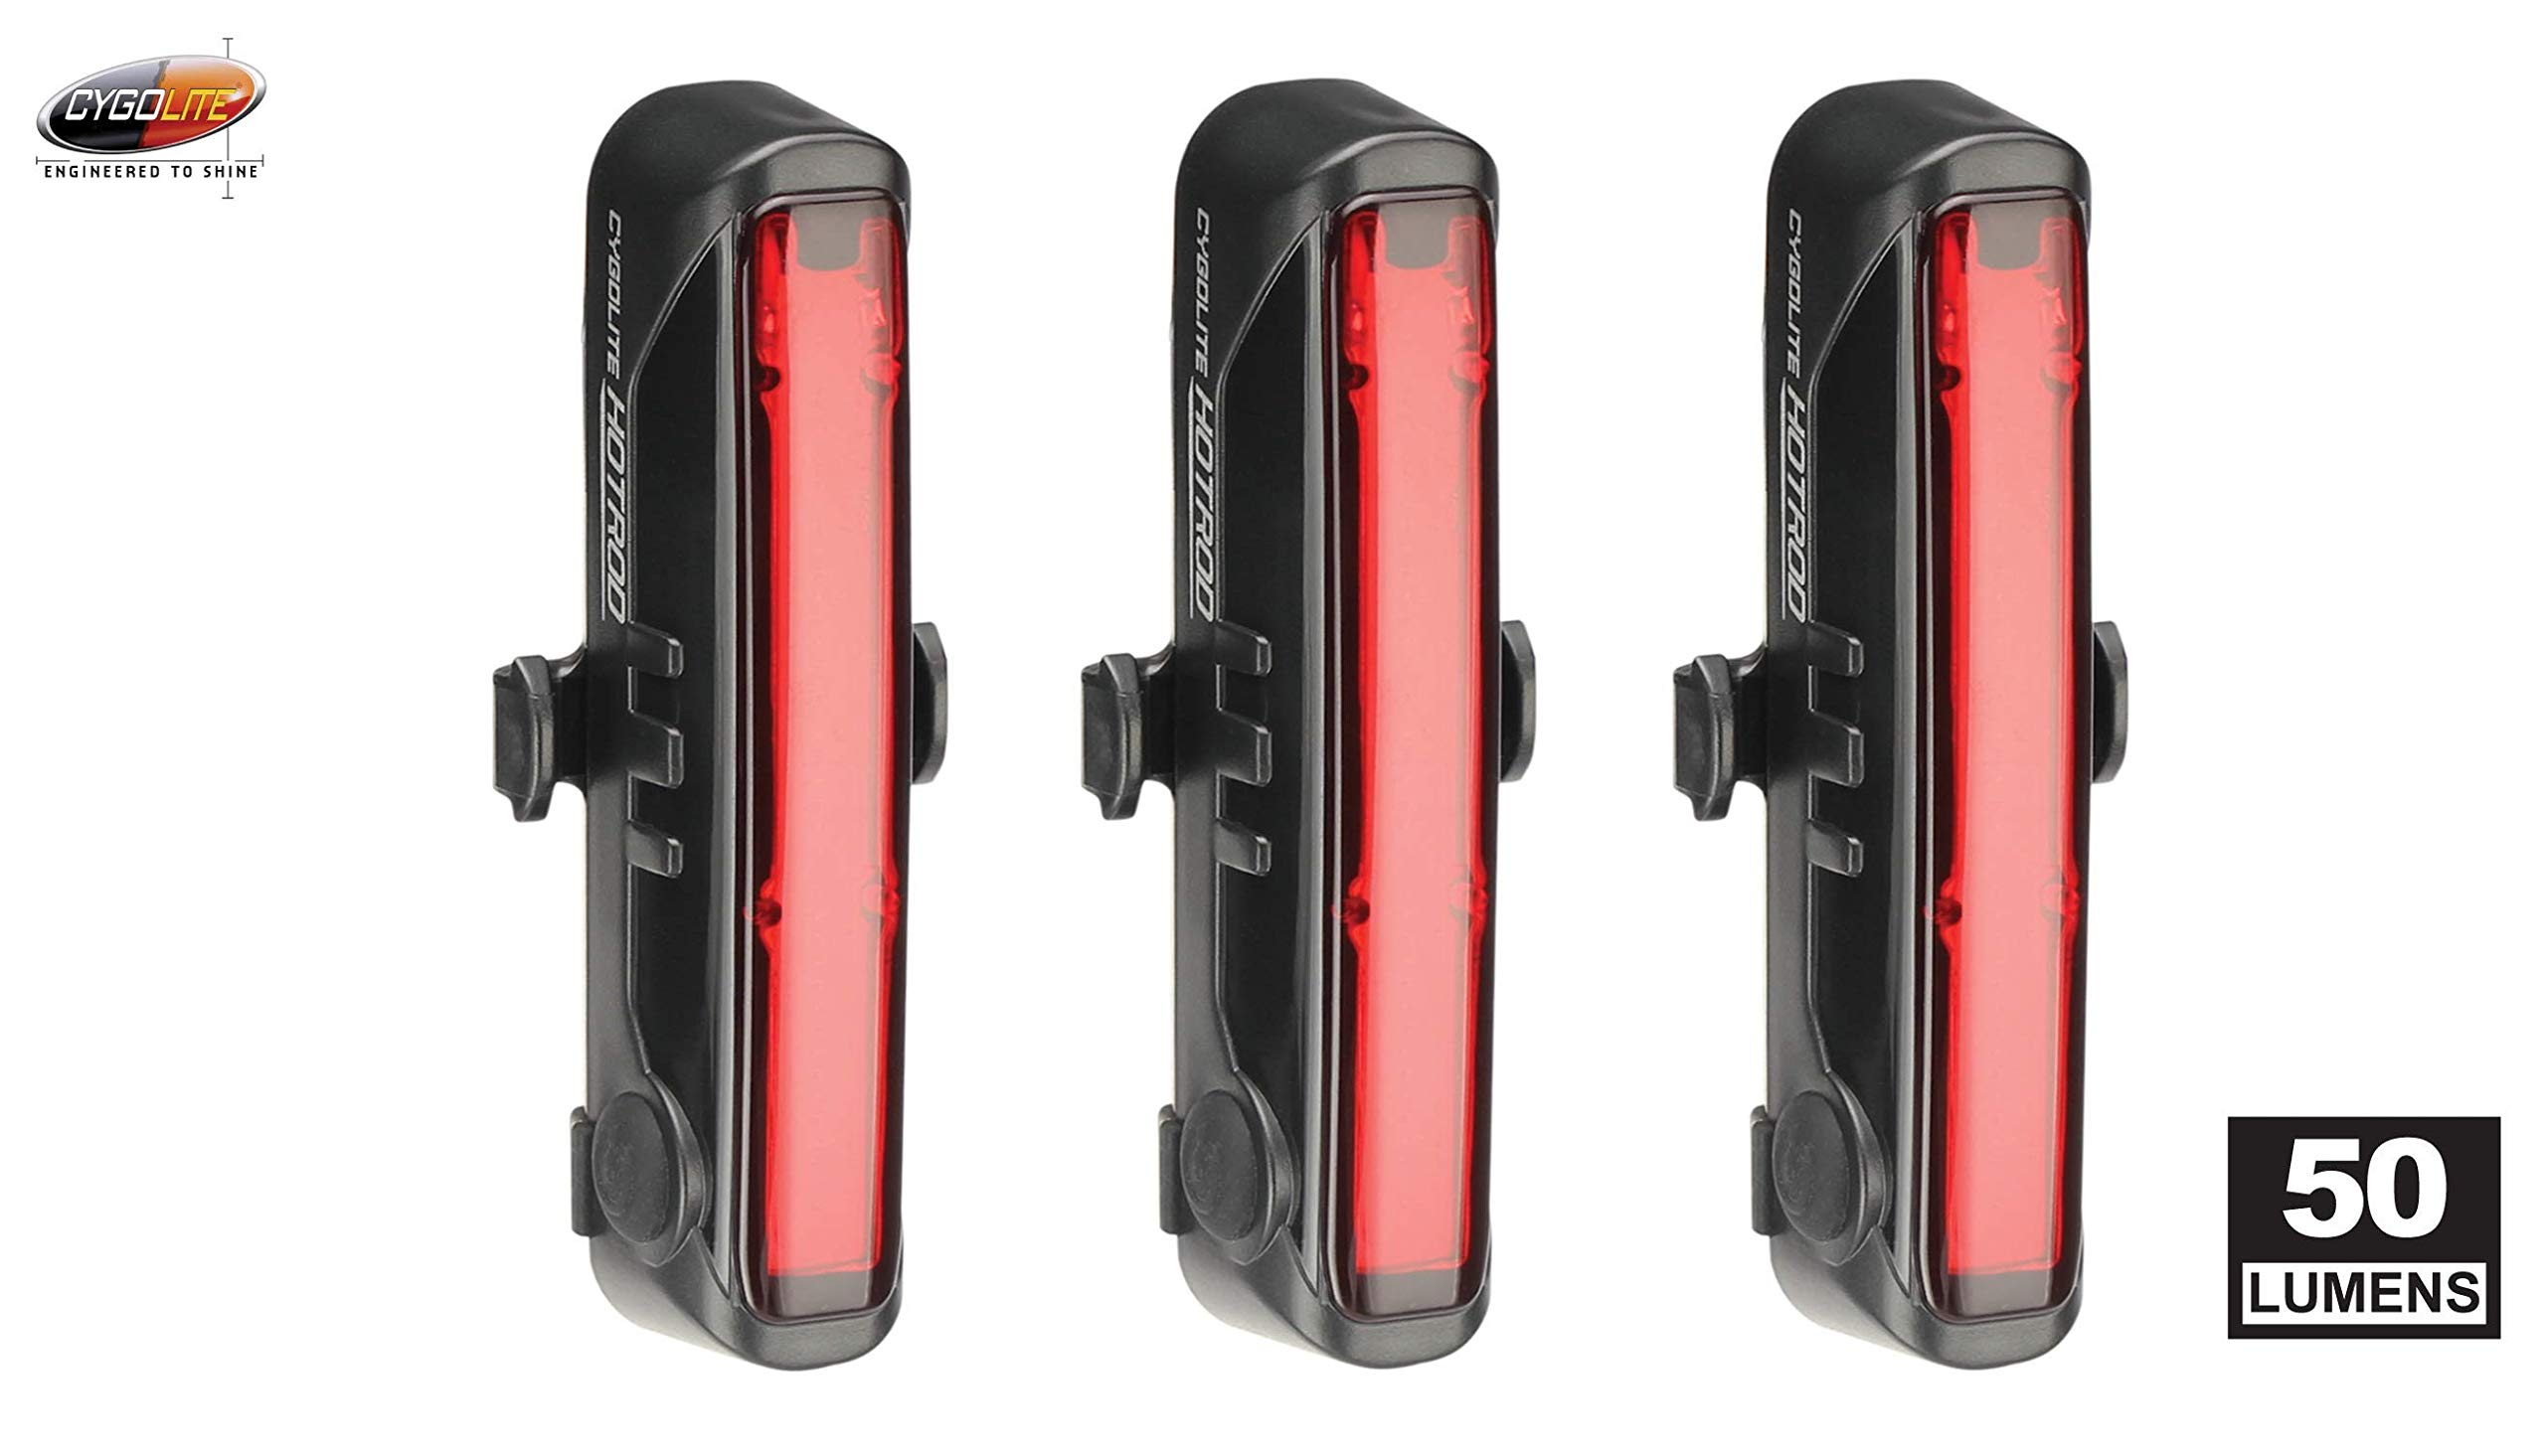 Cygolite Hotrod 50 lm USB Rechargeable Bicycle Tail Light (Тhrее Pаck) by Cygolite